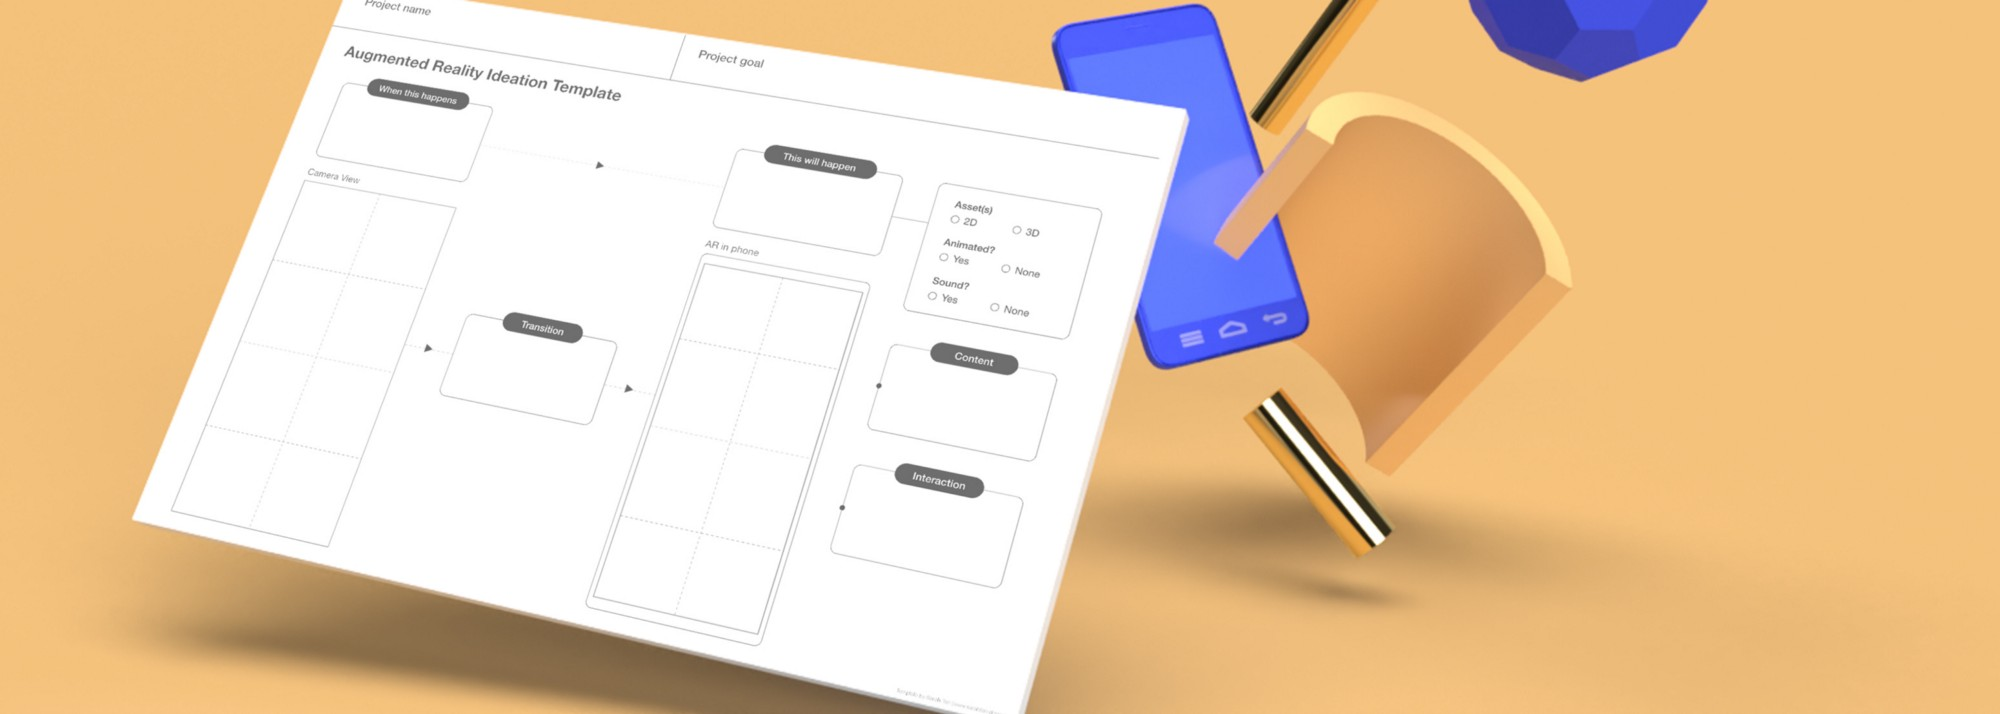 A 3D illustration of the template along with a phone and other decorative elements